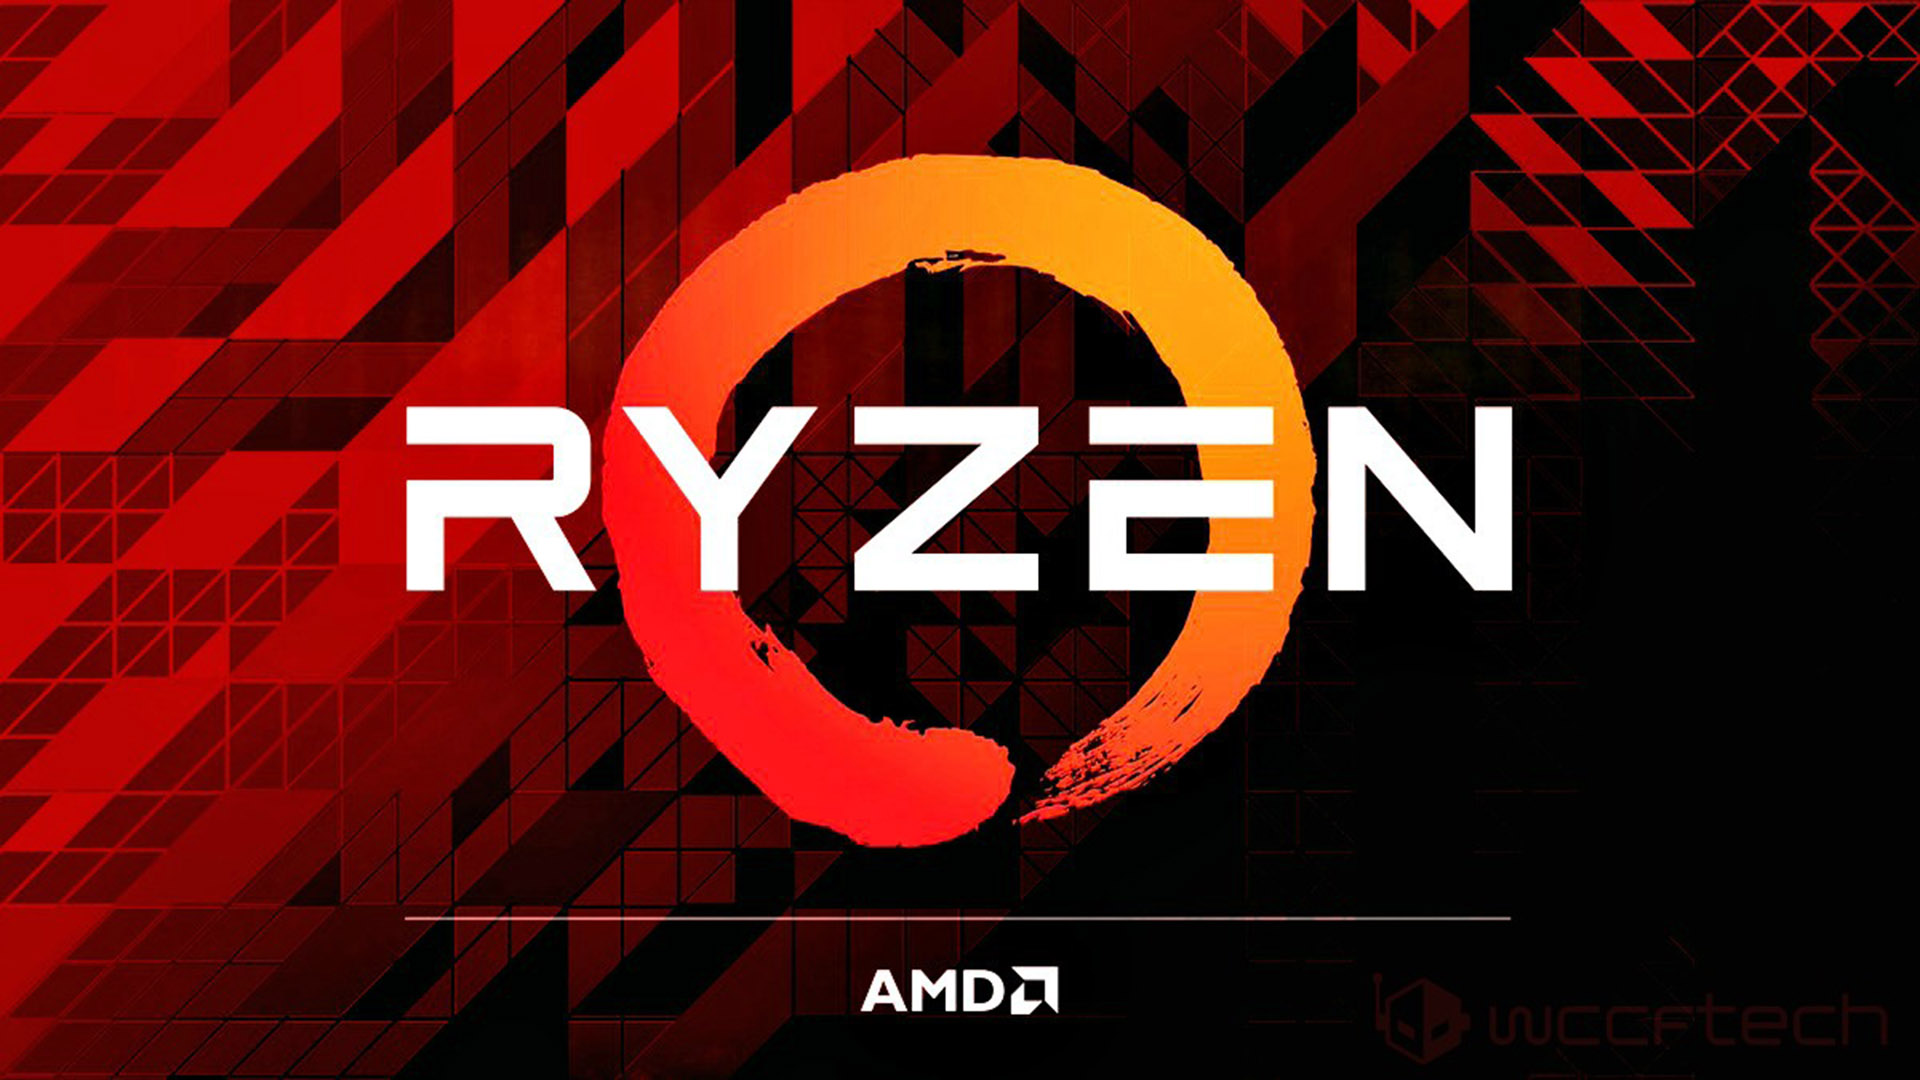 amd ryzen mobile apu benchmarks leaked, up to 90% faster than